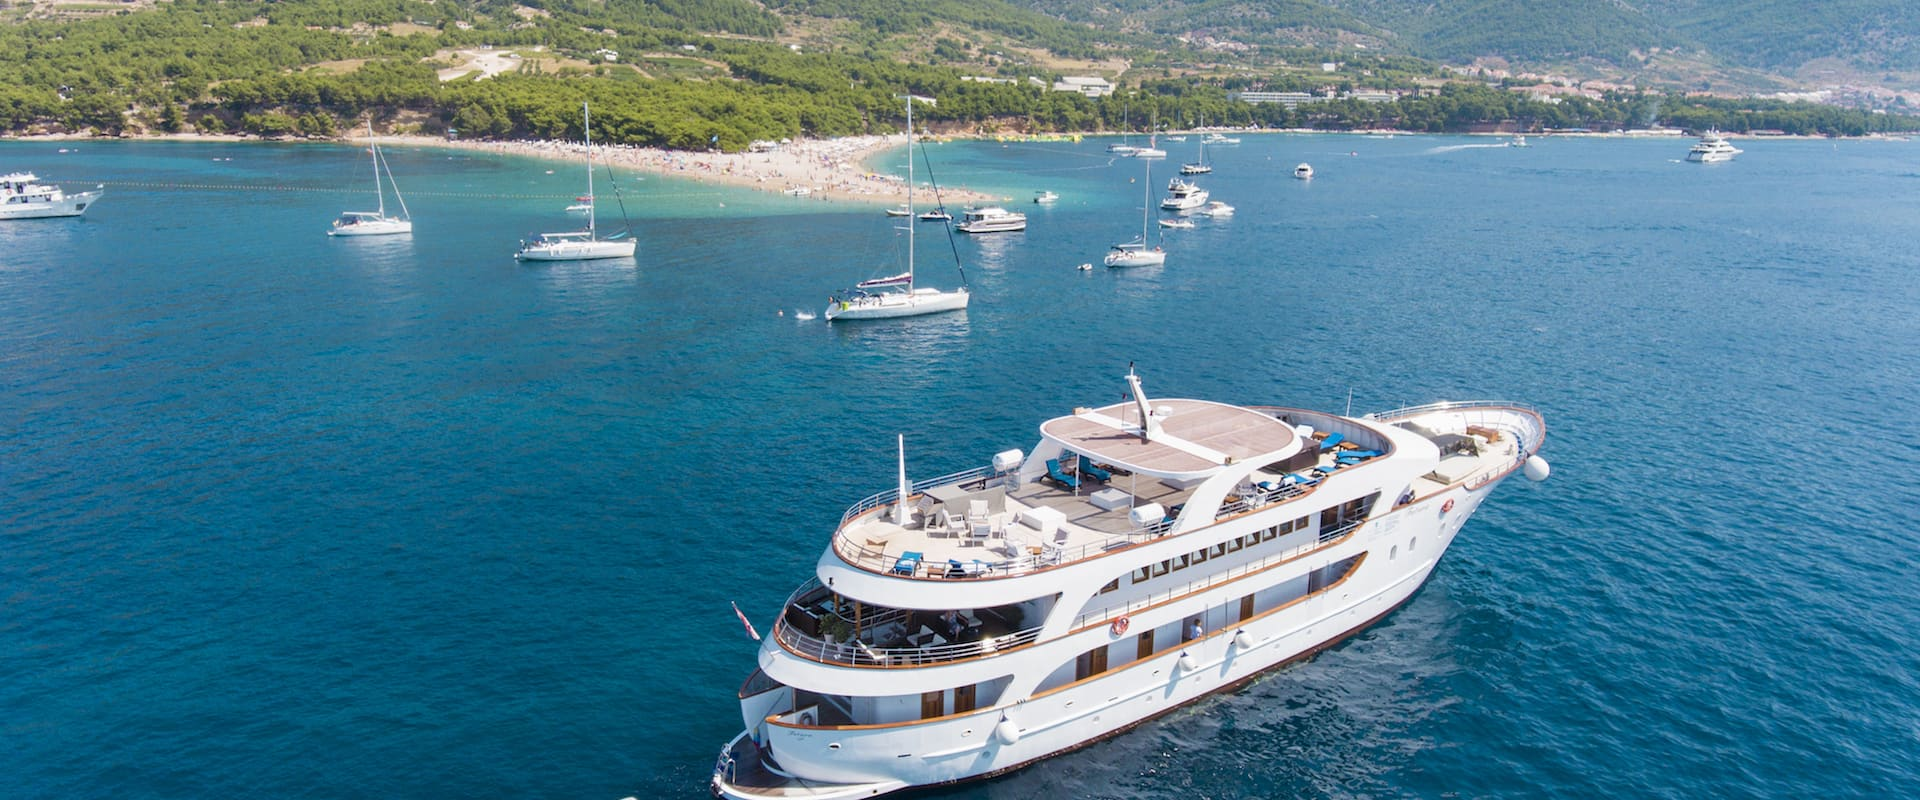 Hvar Adventure Cruises